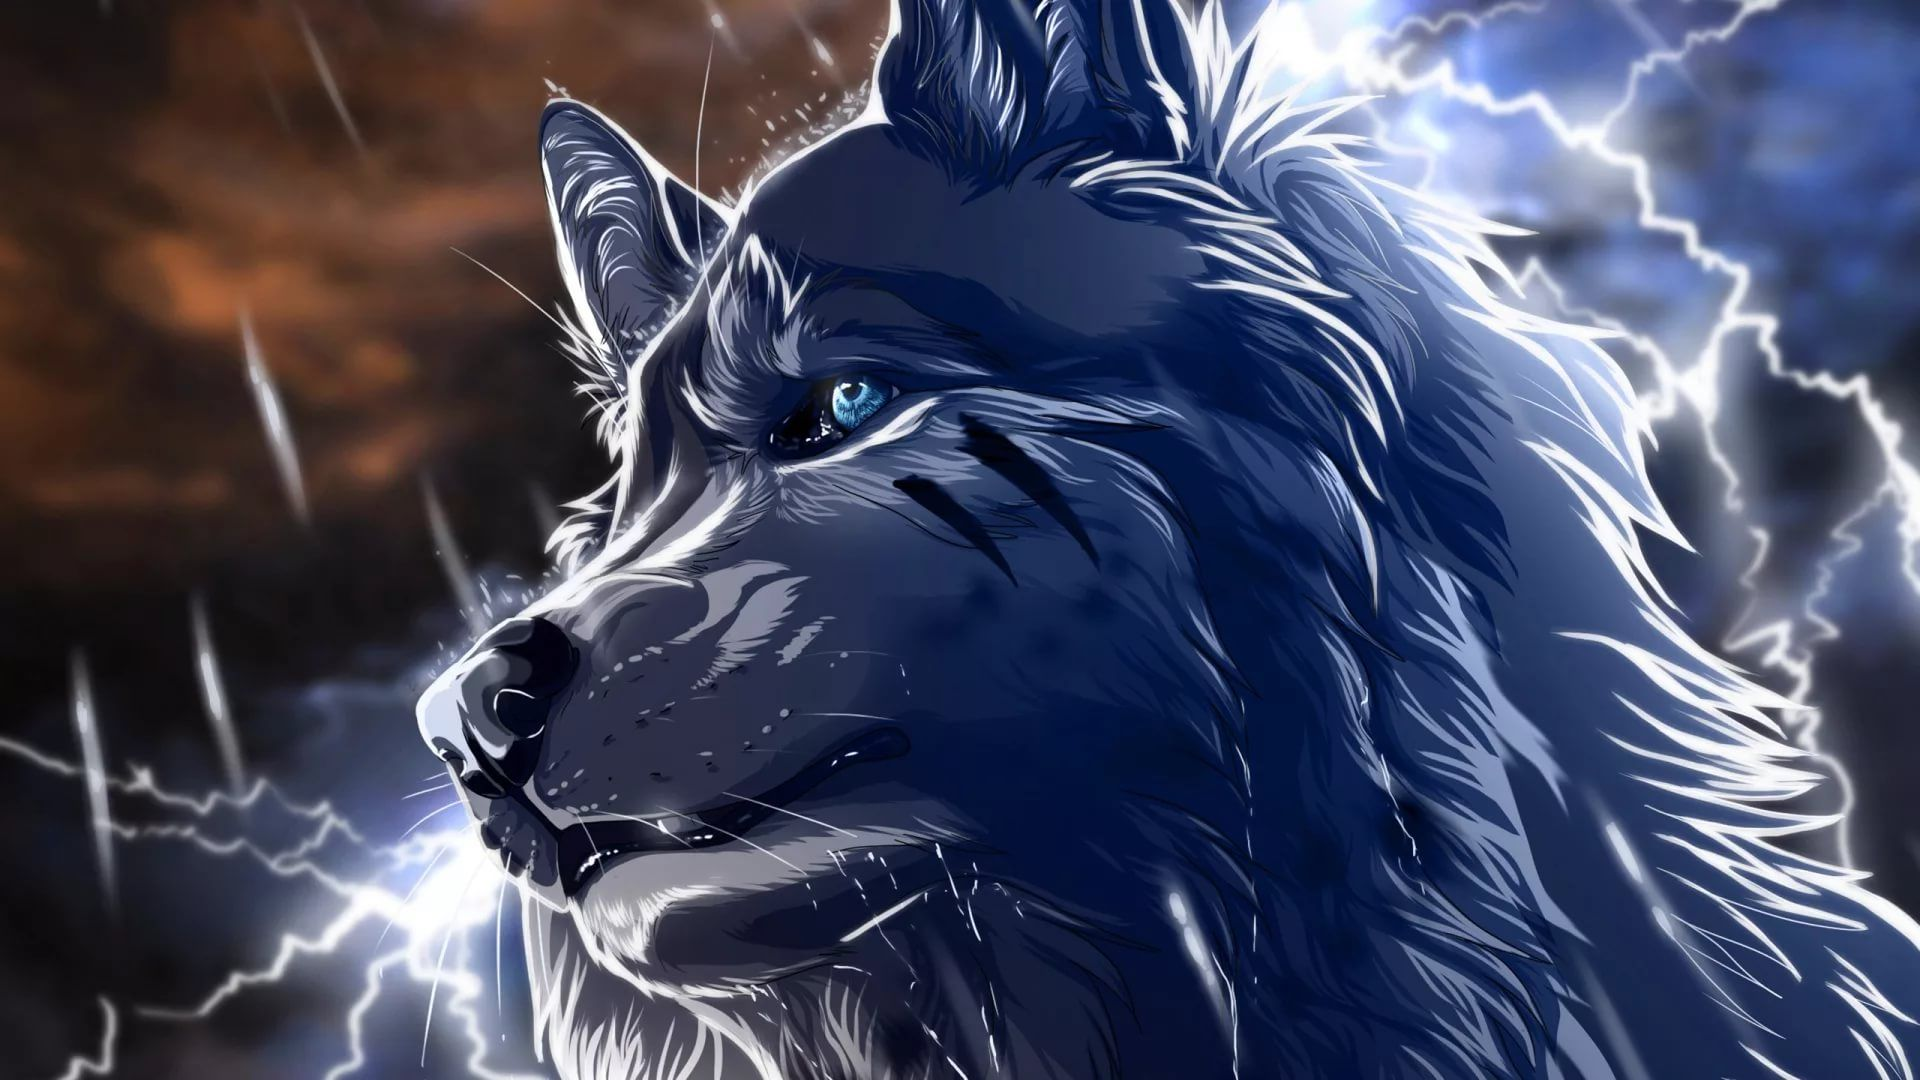 Cool Wolf hd wallpaper 1080p for pc